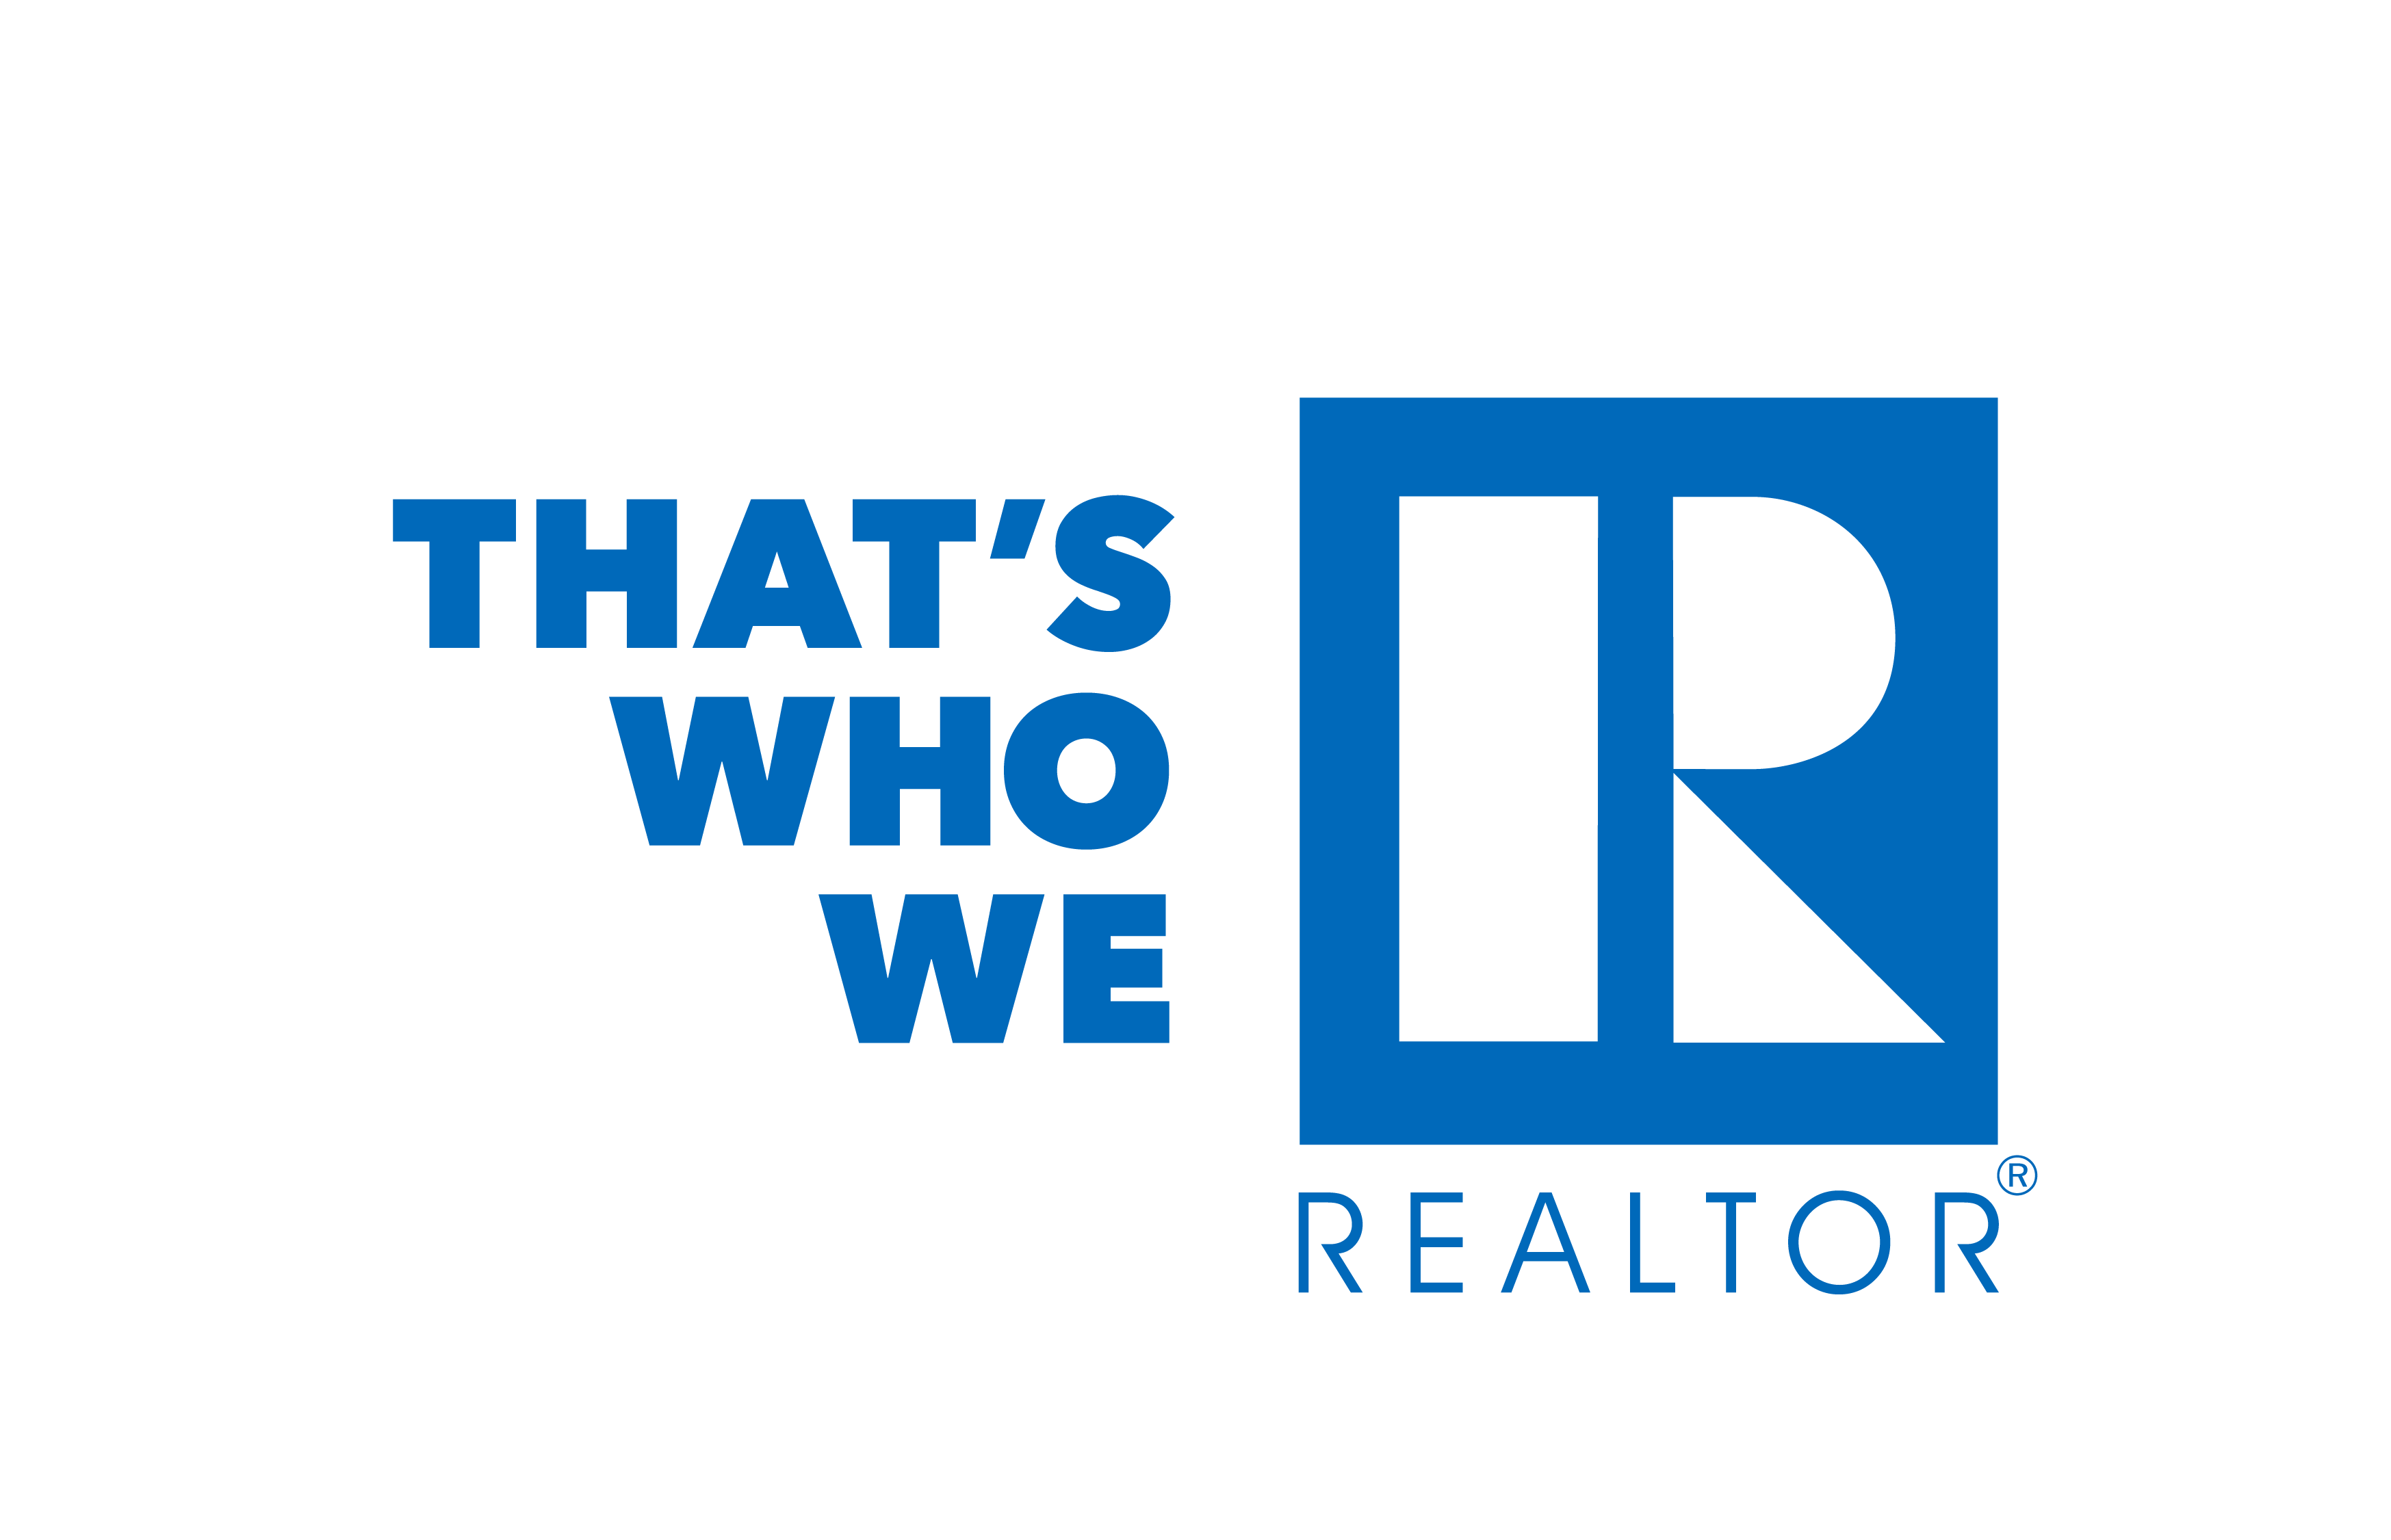 REALTOR® certification